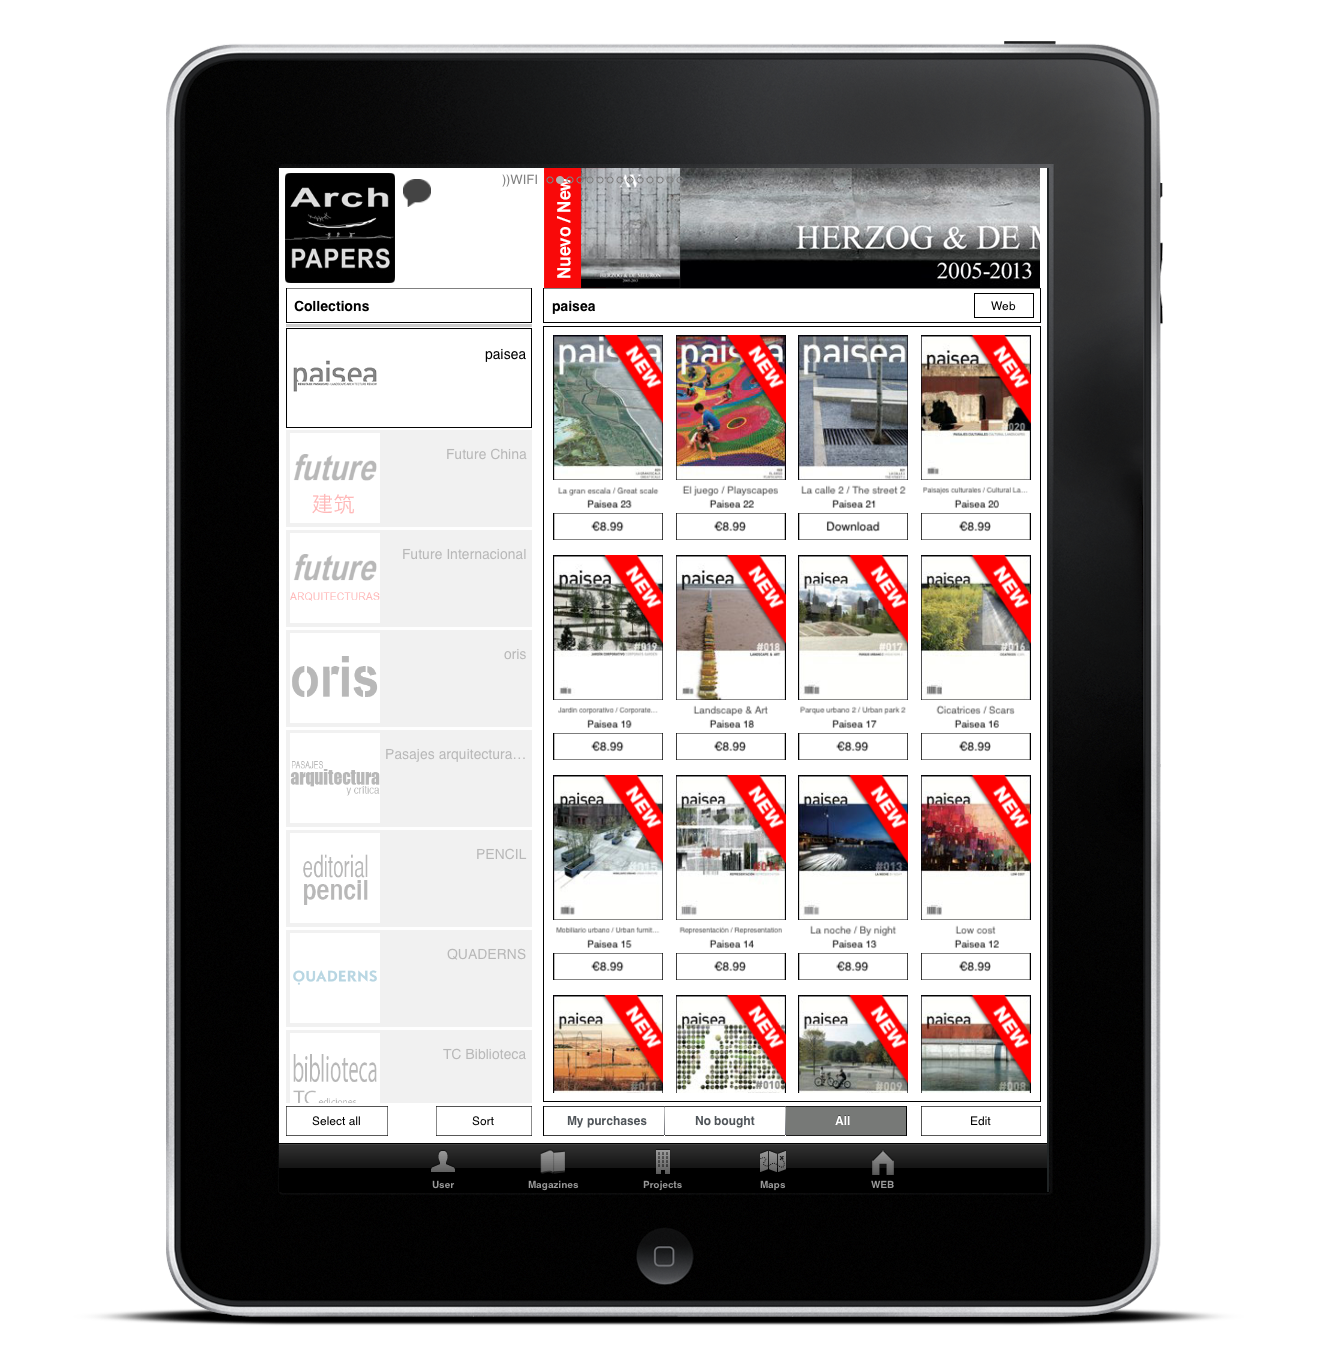 Paisea landscape architecture magazine available on archpapers app archpapers - Application architecture ipad ...